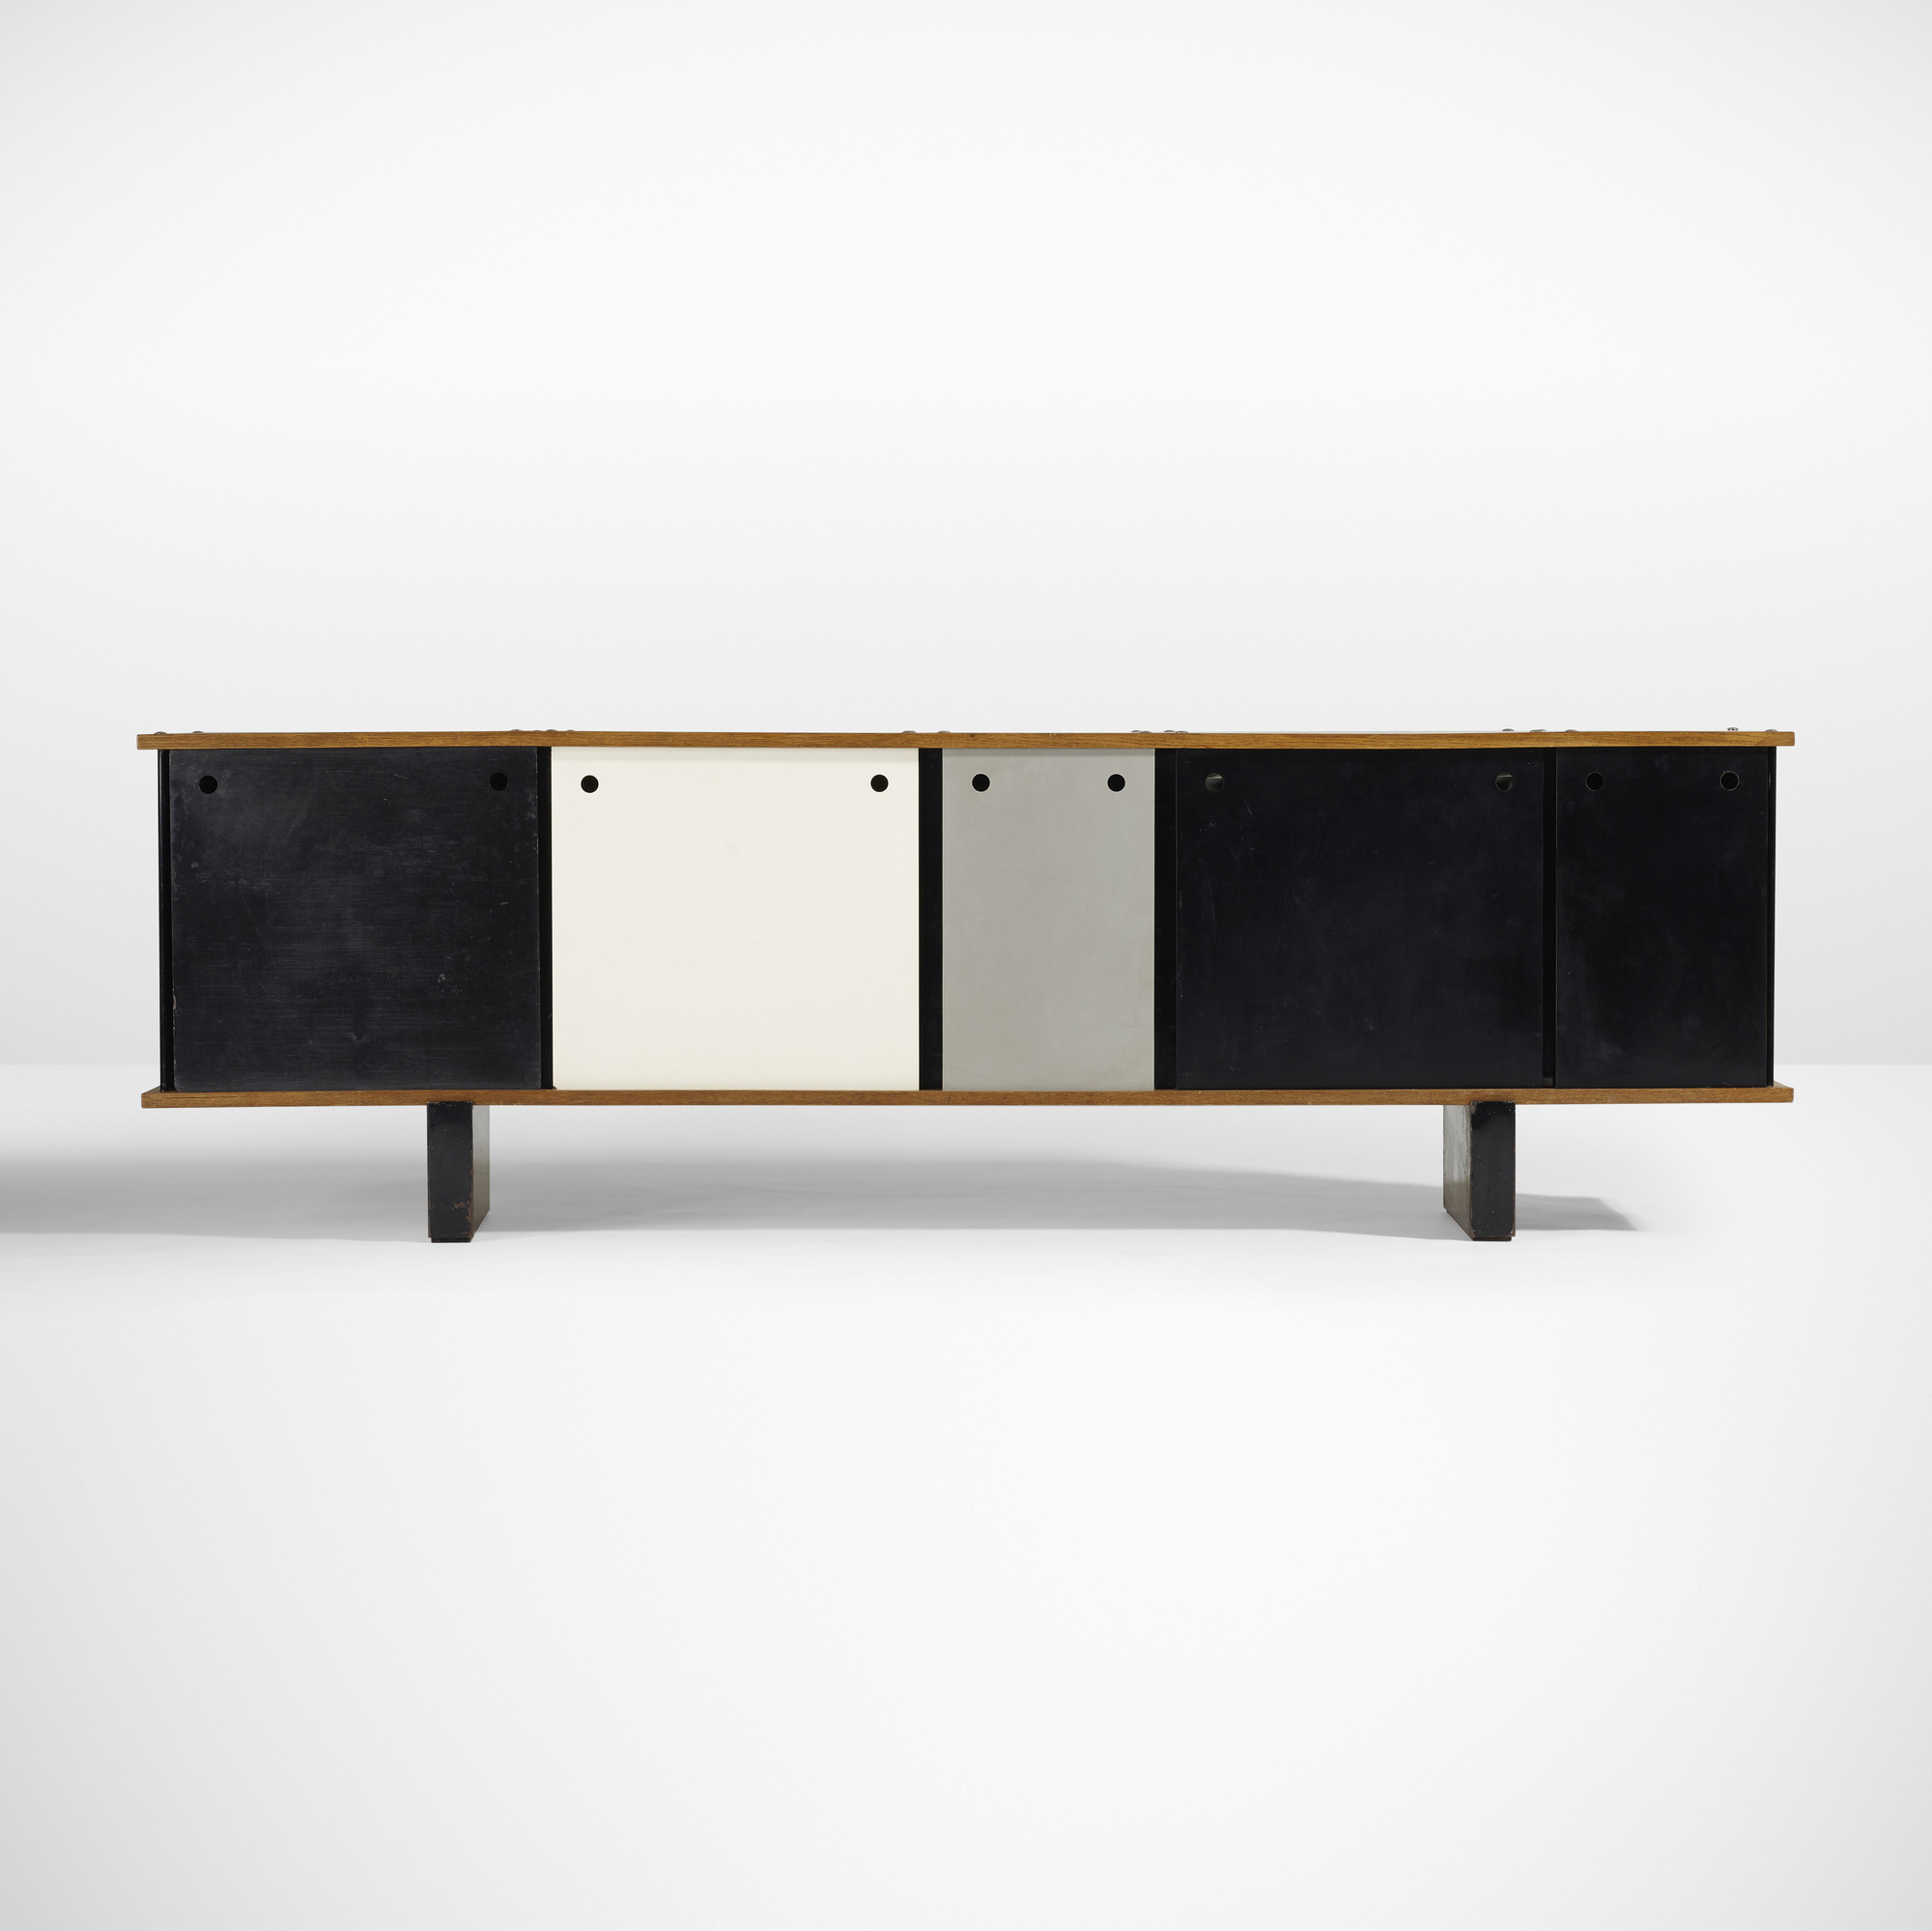 9 charlotte perriand rare bloc bahut from cit cansado mauritania. Black Bedroom Furniture Sets. Home Design Ideas